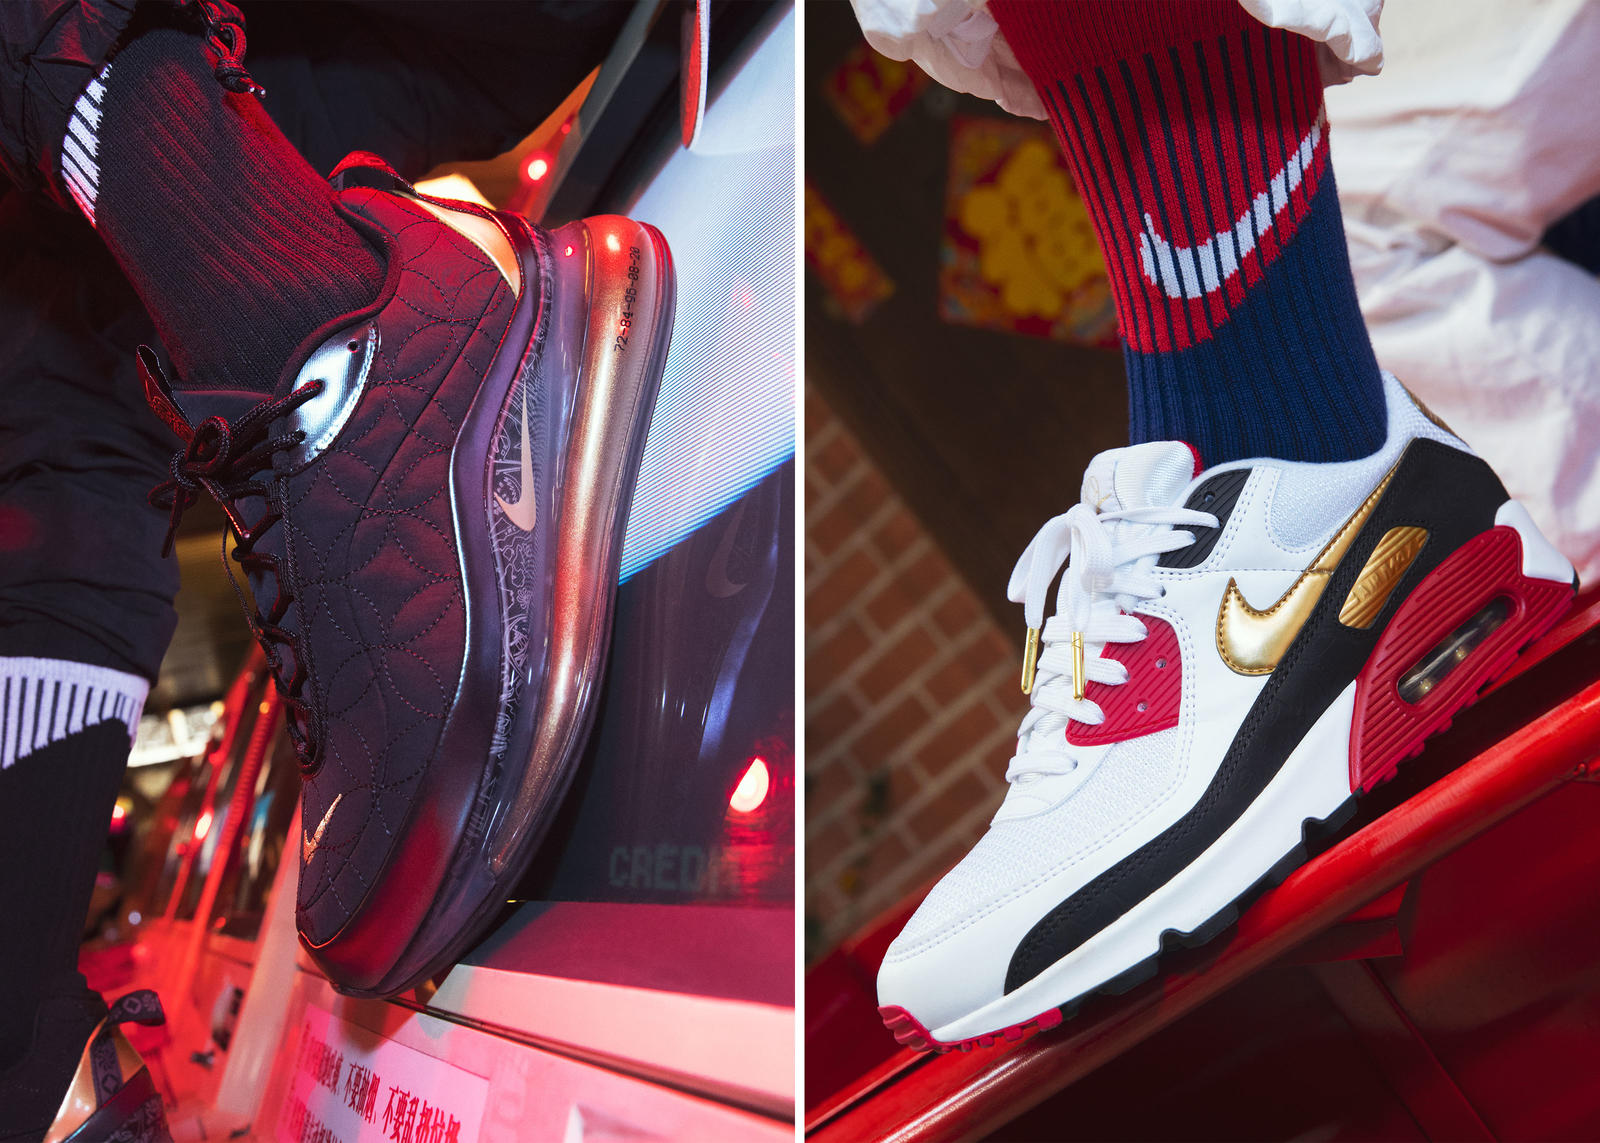 Nike Chinese New Year 2020 Year of the Rat Footwear and Apparel Collection Official Images 15